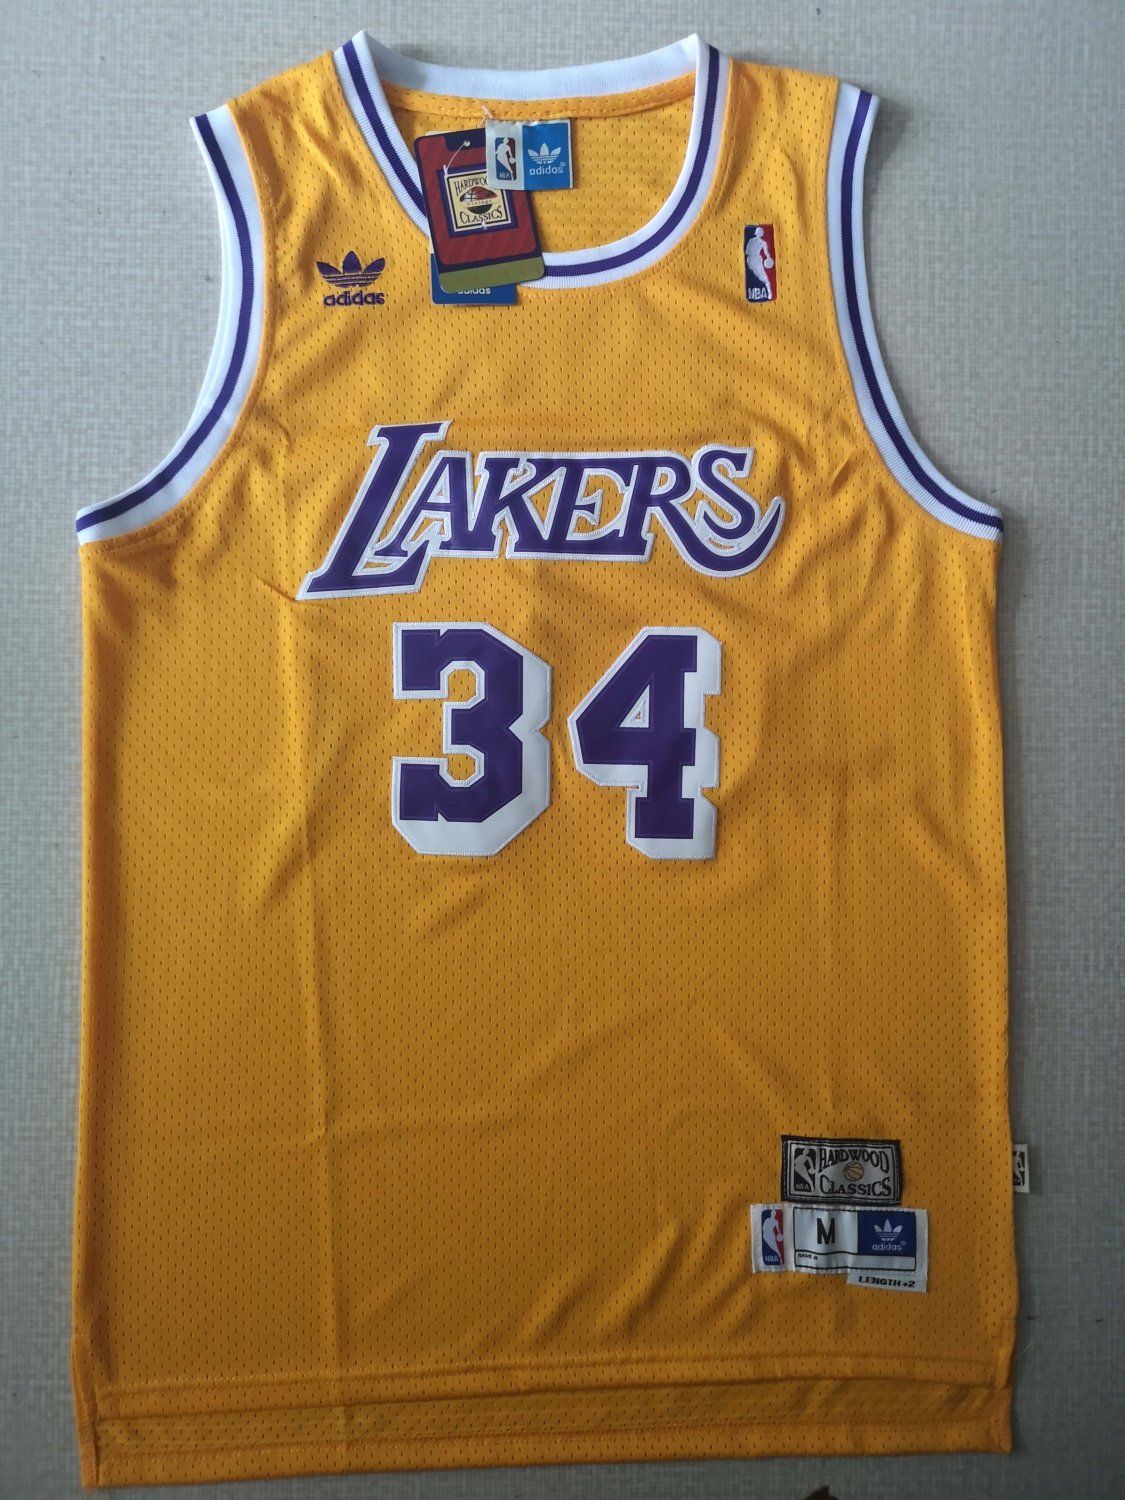 Men's Lakers 34# Shaquille O'Neal Jersey Yellow Gold Throwback